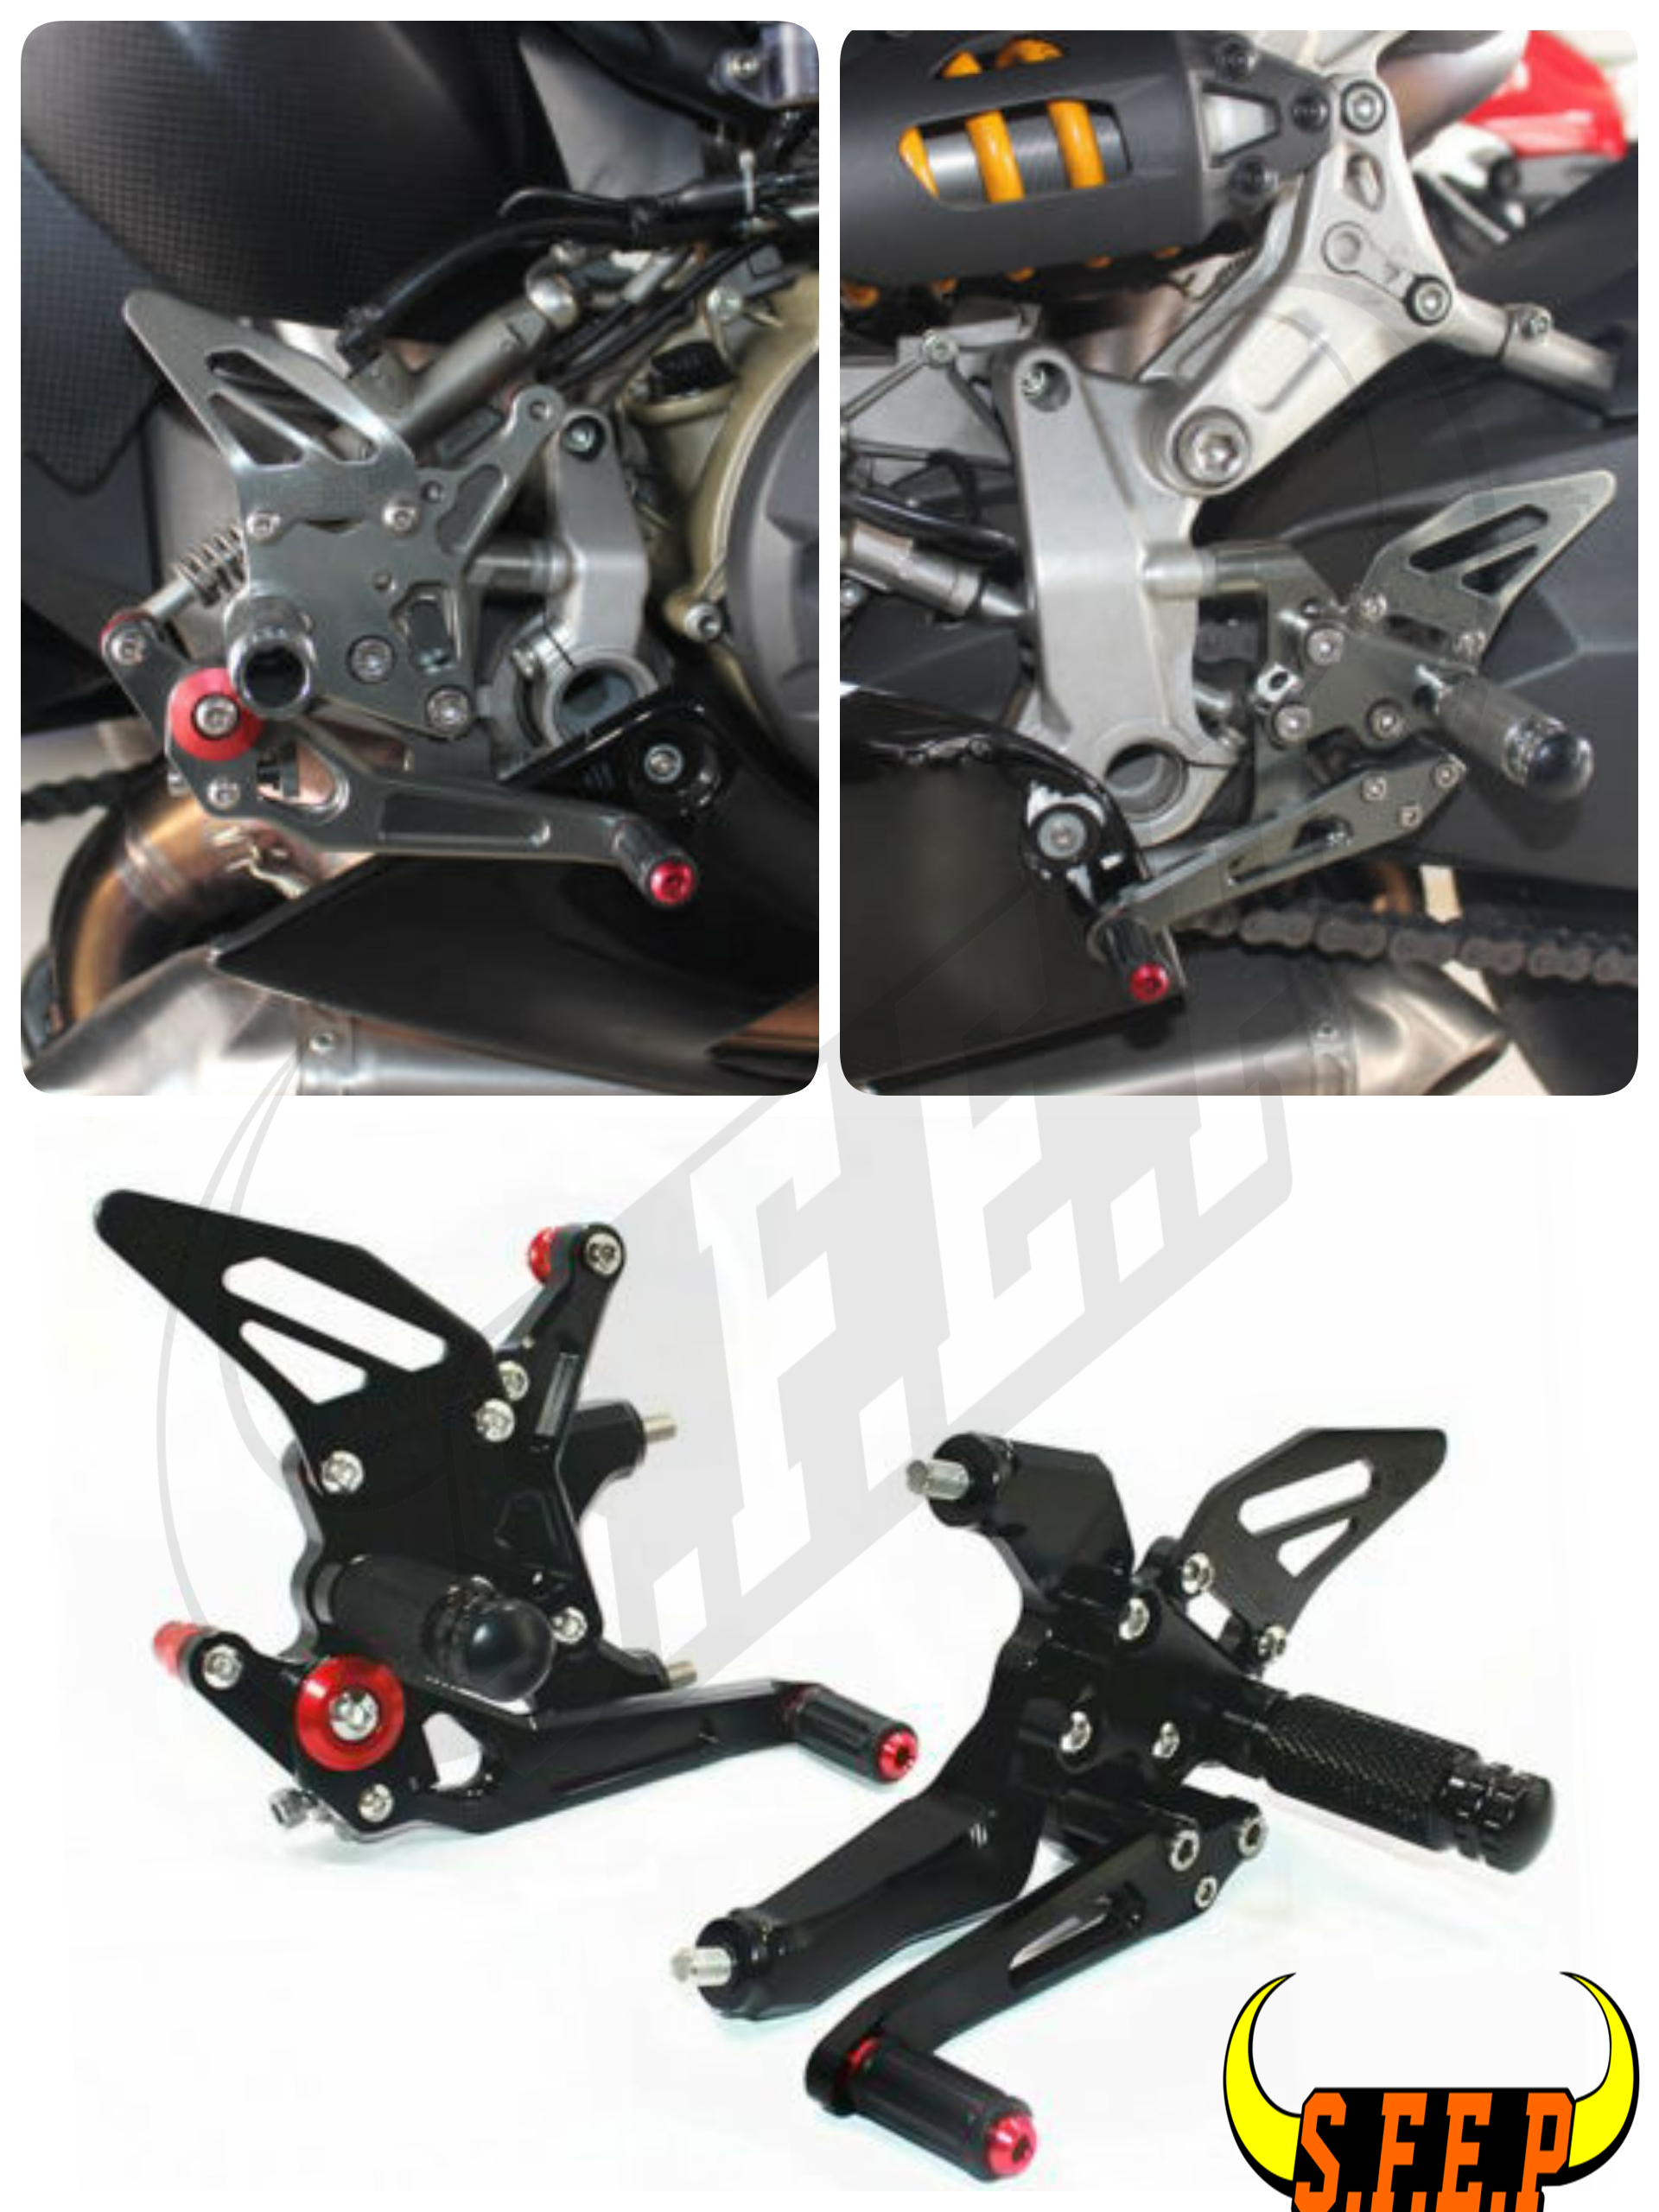 Rearsets Rear Sets Footpegs CNC Adjustable For Ducati 899 Panigale 2014 2015 1199 Panigale 2012-2015 1299 Panigale 2015 2016 2017